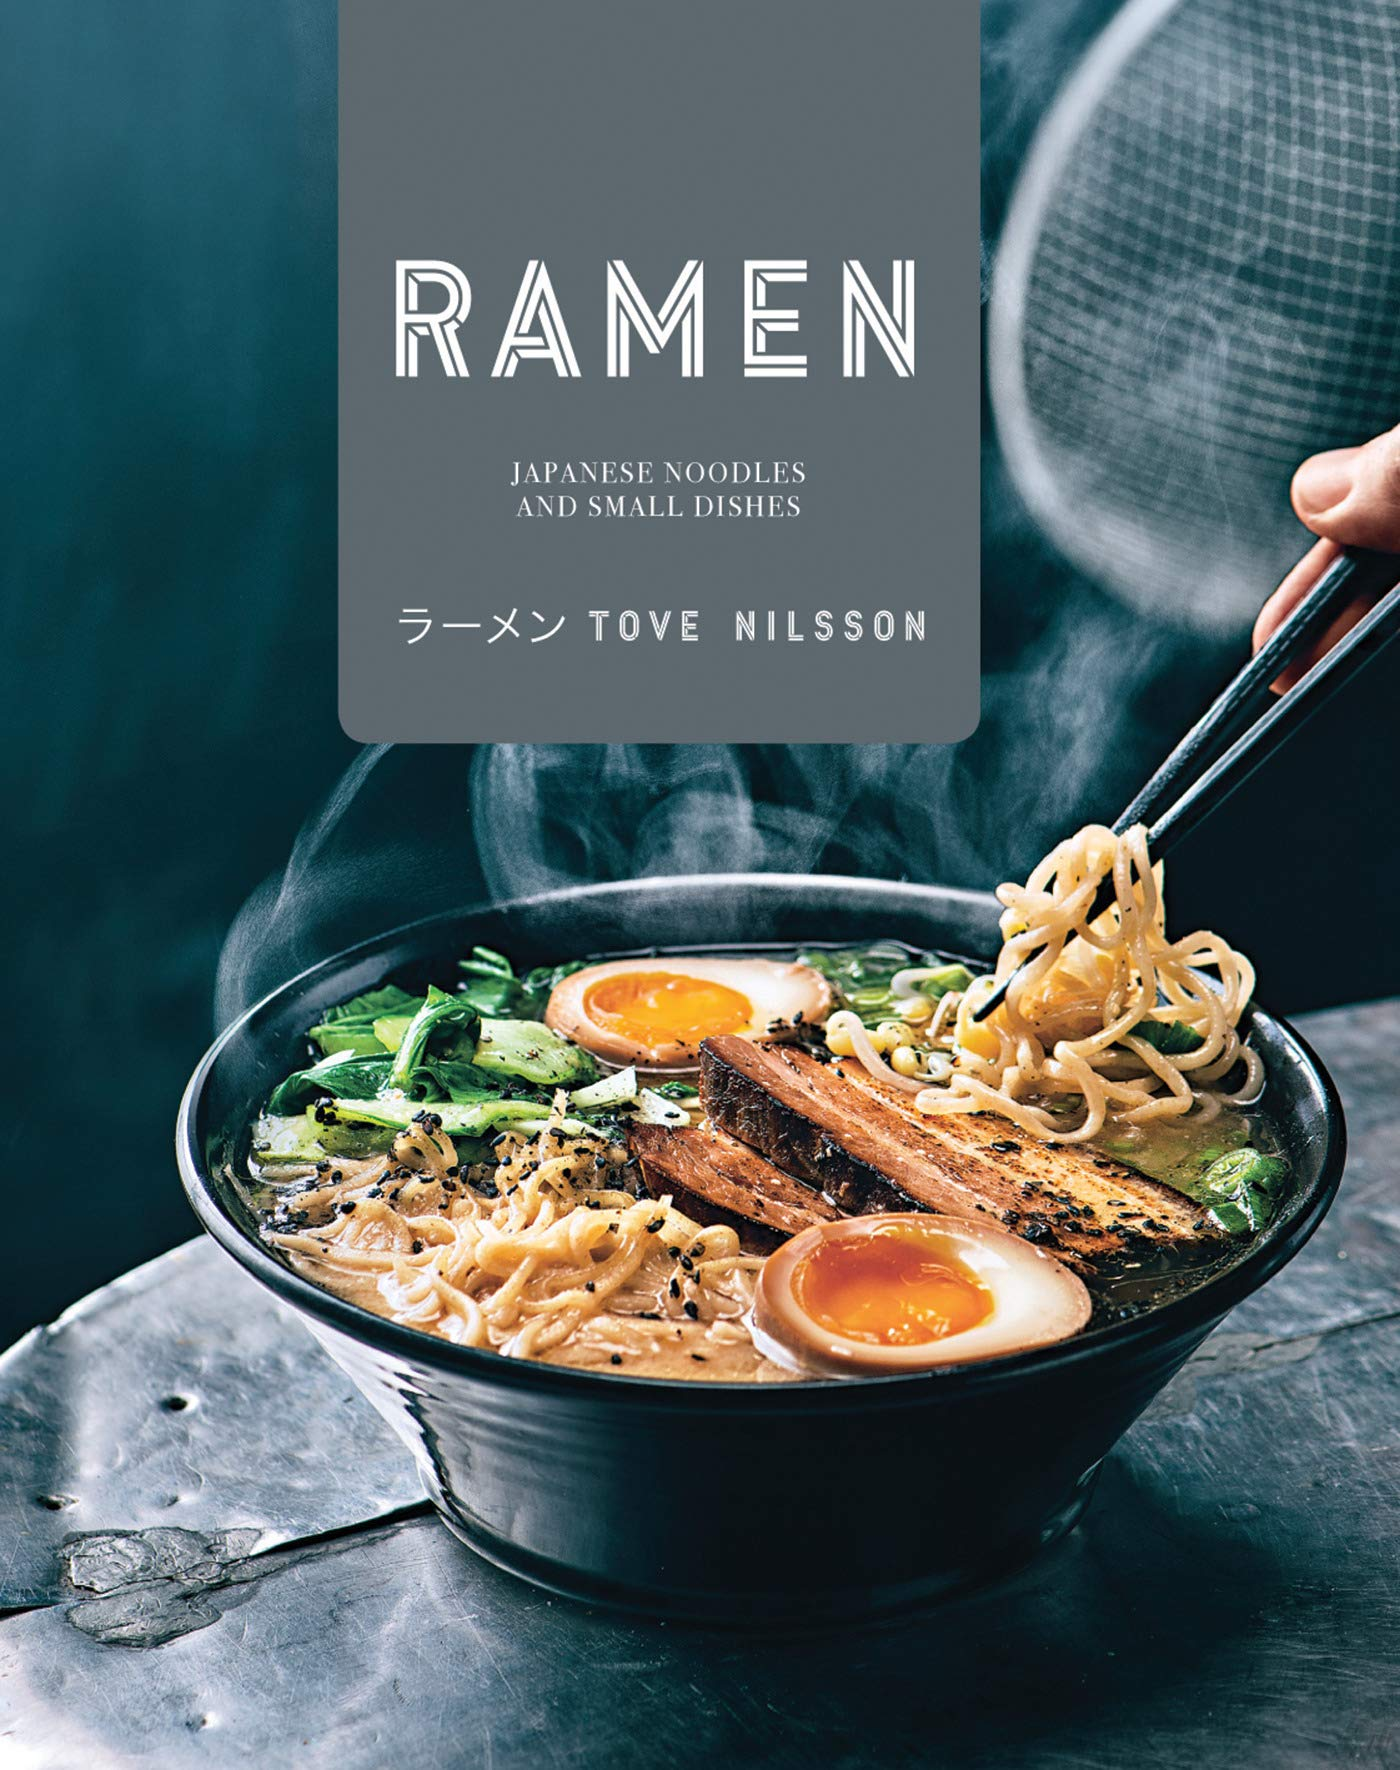 Ramen Japanese Noodles And Small Dishes Tove Nilsson